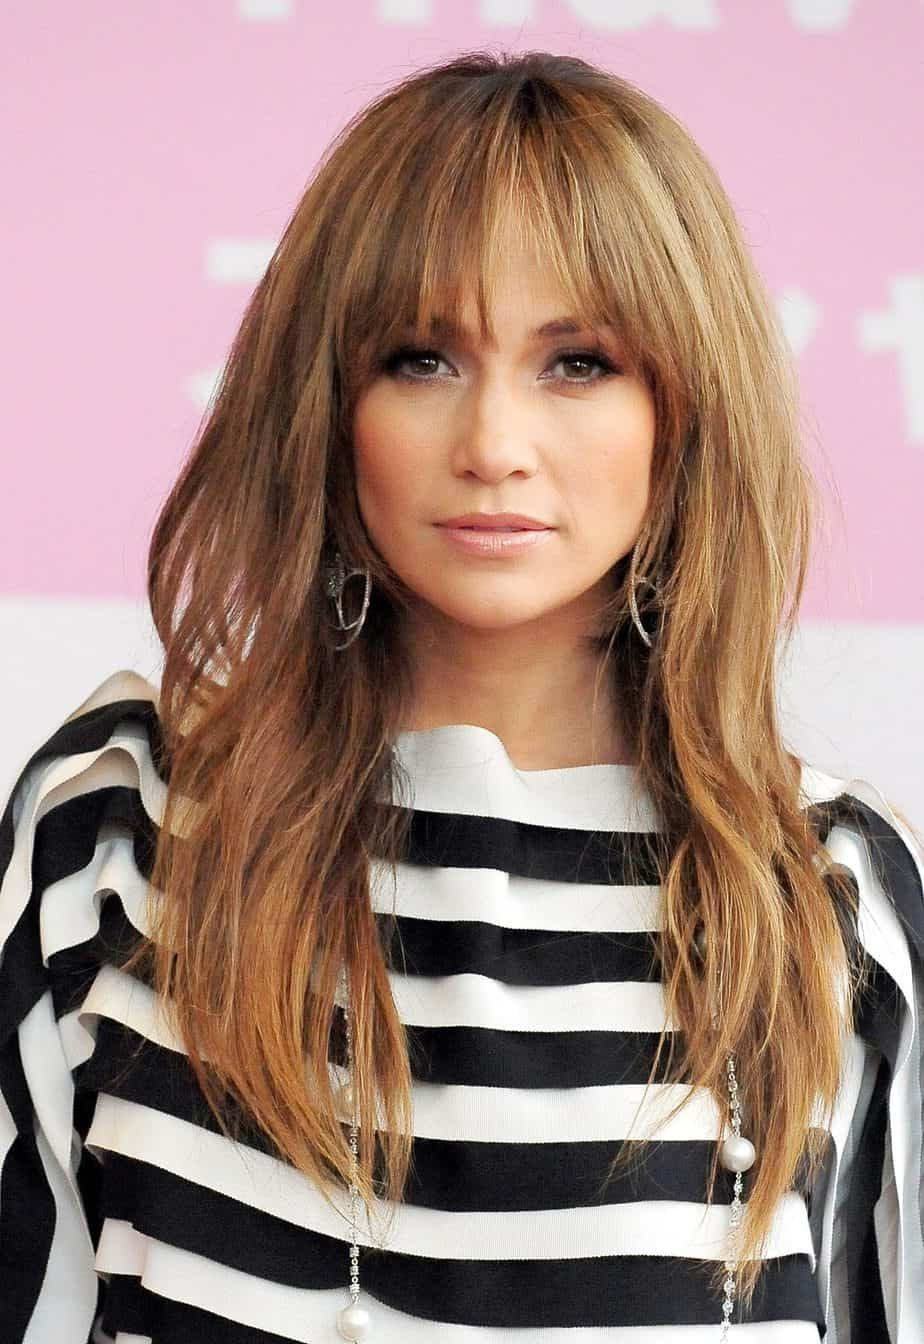 Haircuts For Thick Hair 2021 Long Shag With Choppy Bangs In 2020 Long Hair Styles Celebrity Long Hair Hair Styles